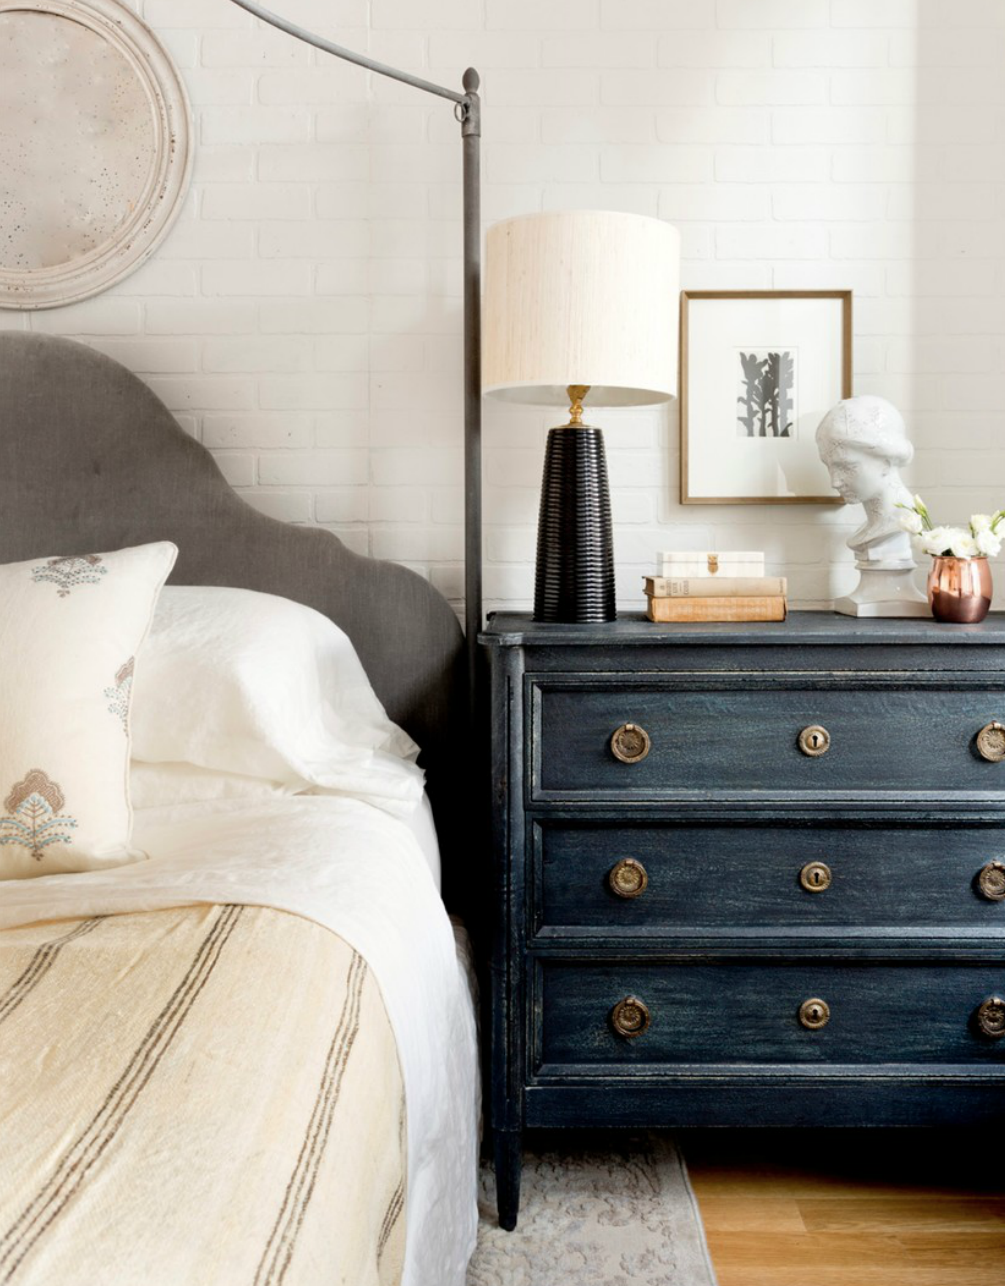 Table Lamps Bedroom Lighting Get The Look At Mayer Lighting